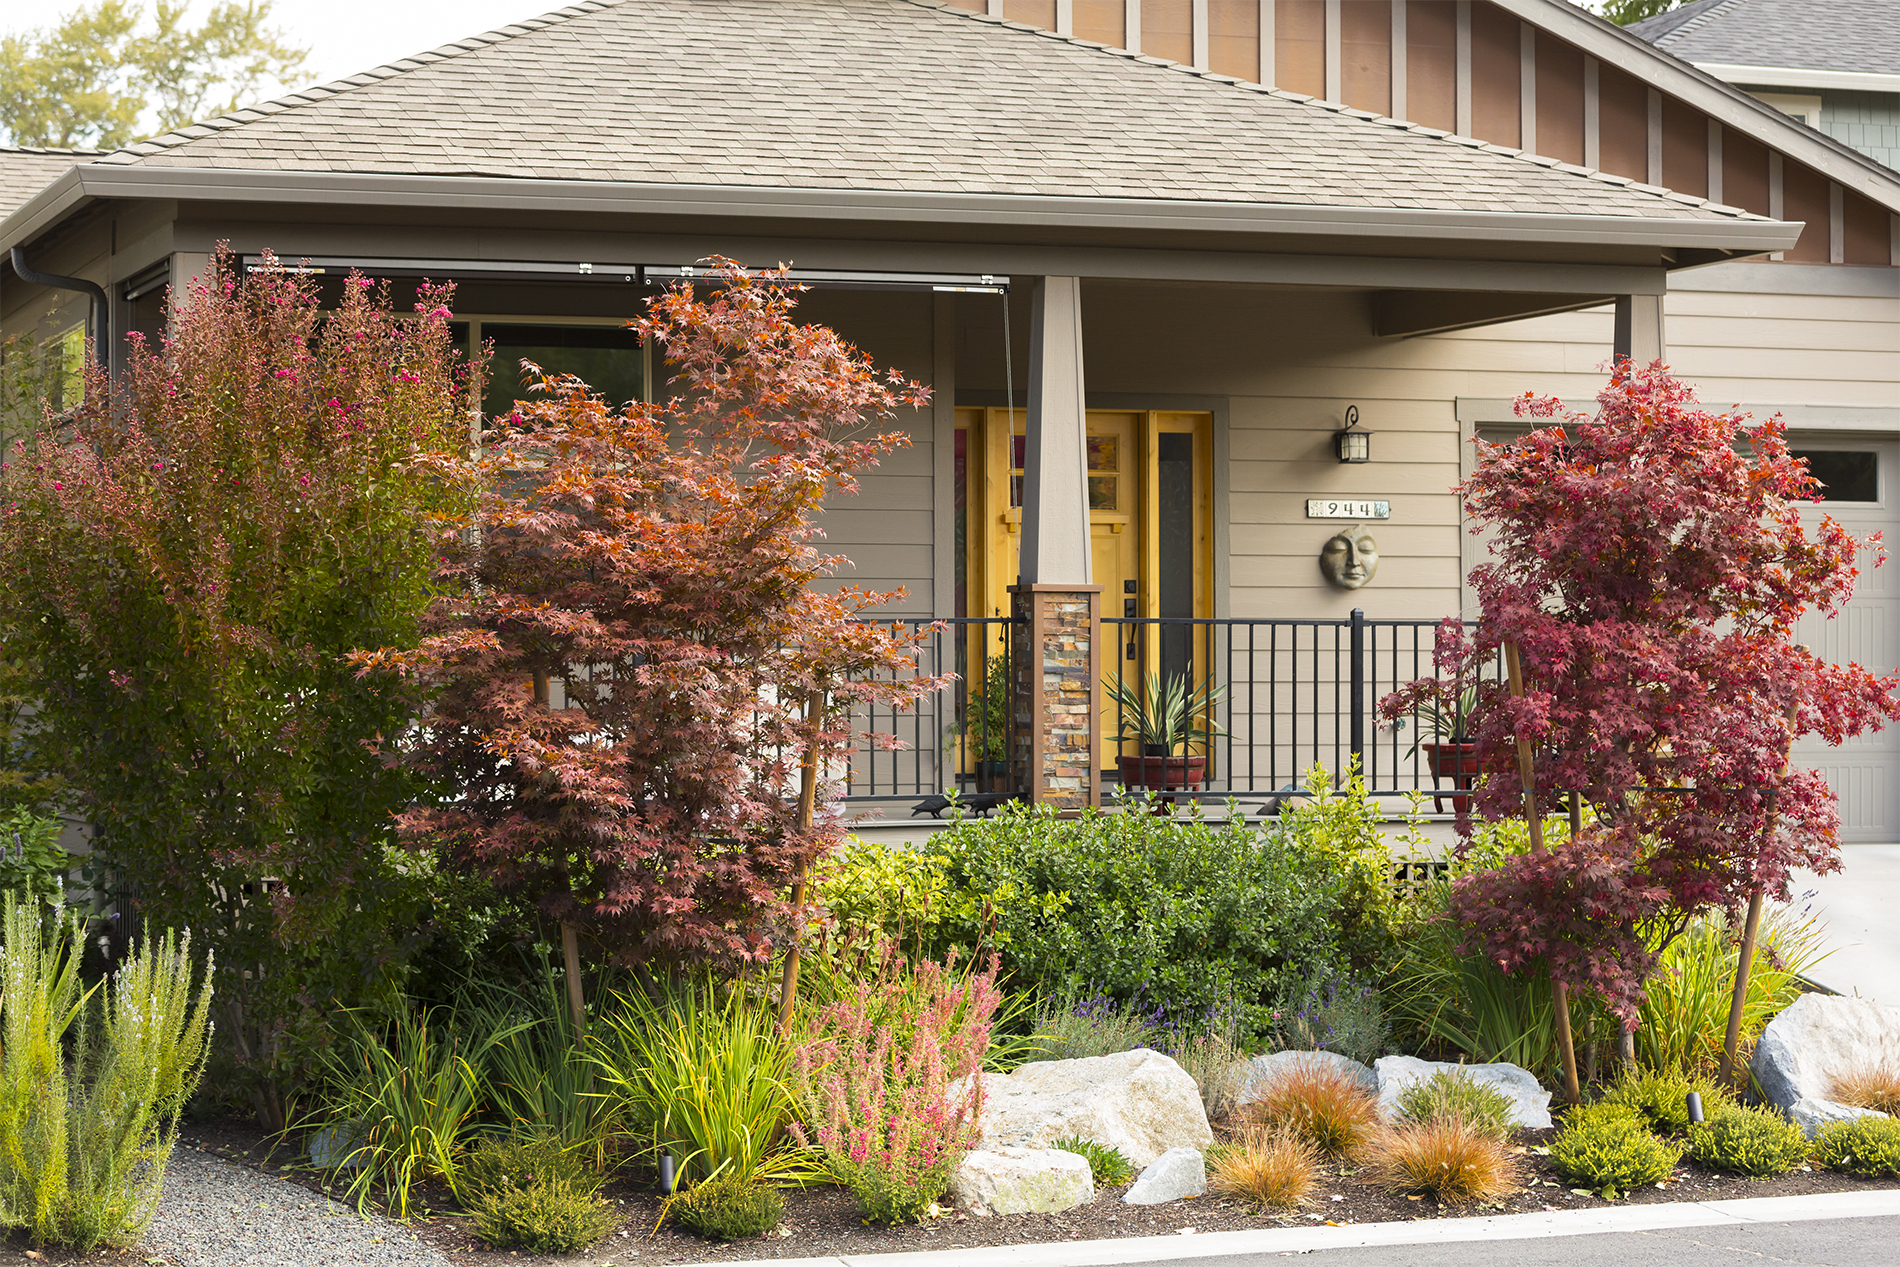 Water-wise + Pollinator-Attracting Perennial Garden + Curb Appeal